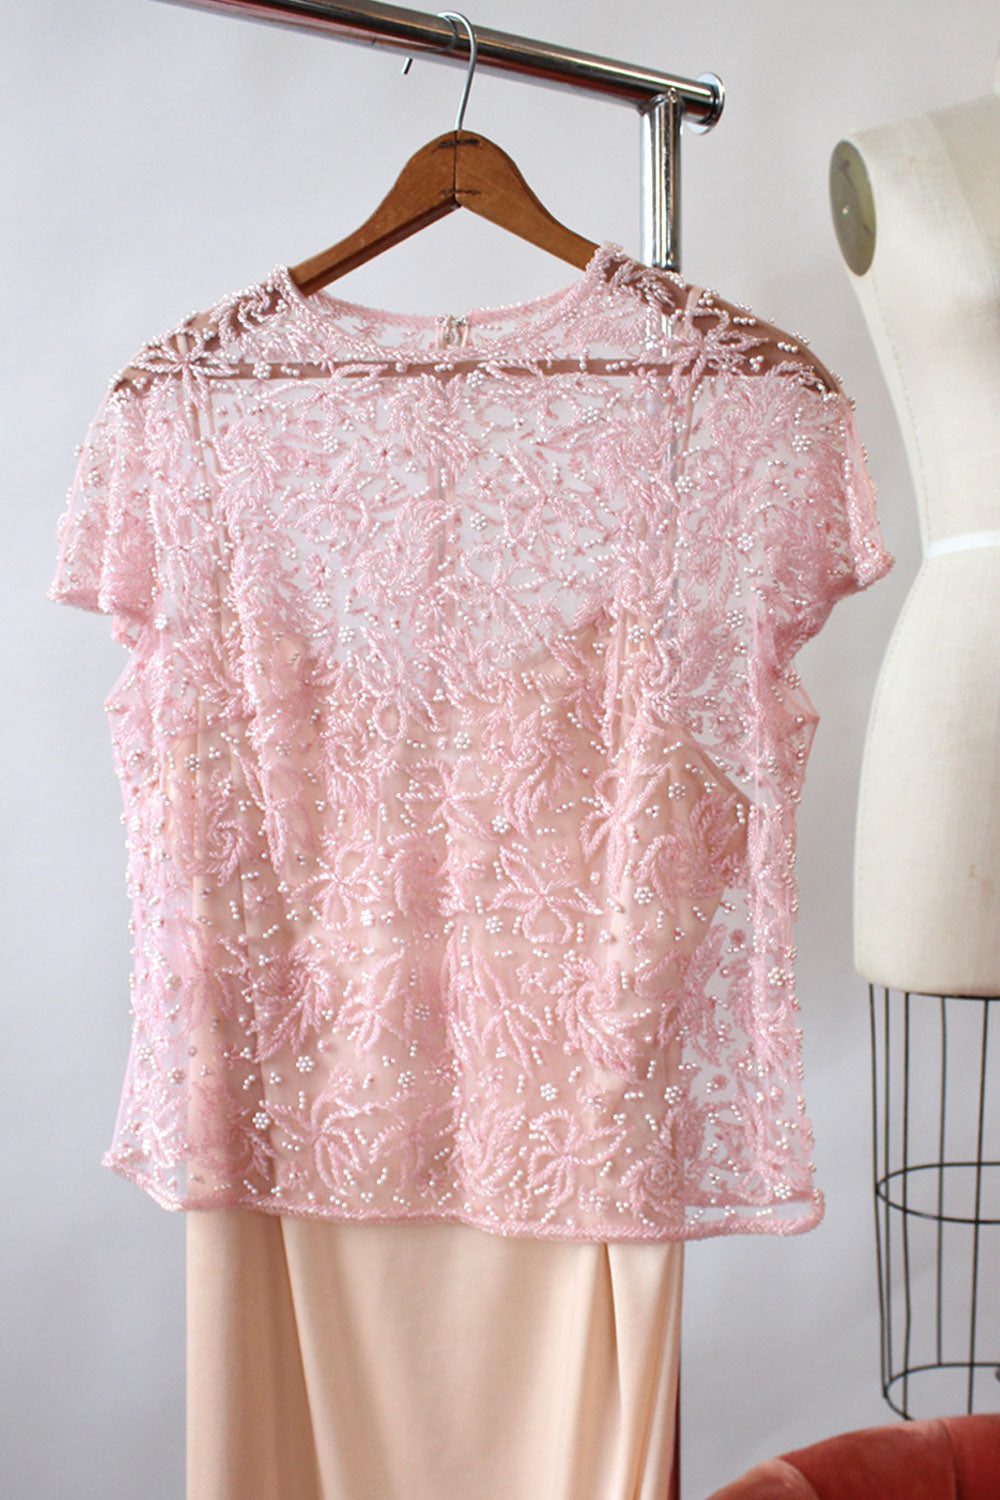 Crystallized Sheer Beaded Top S-L